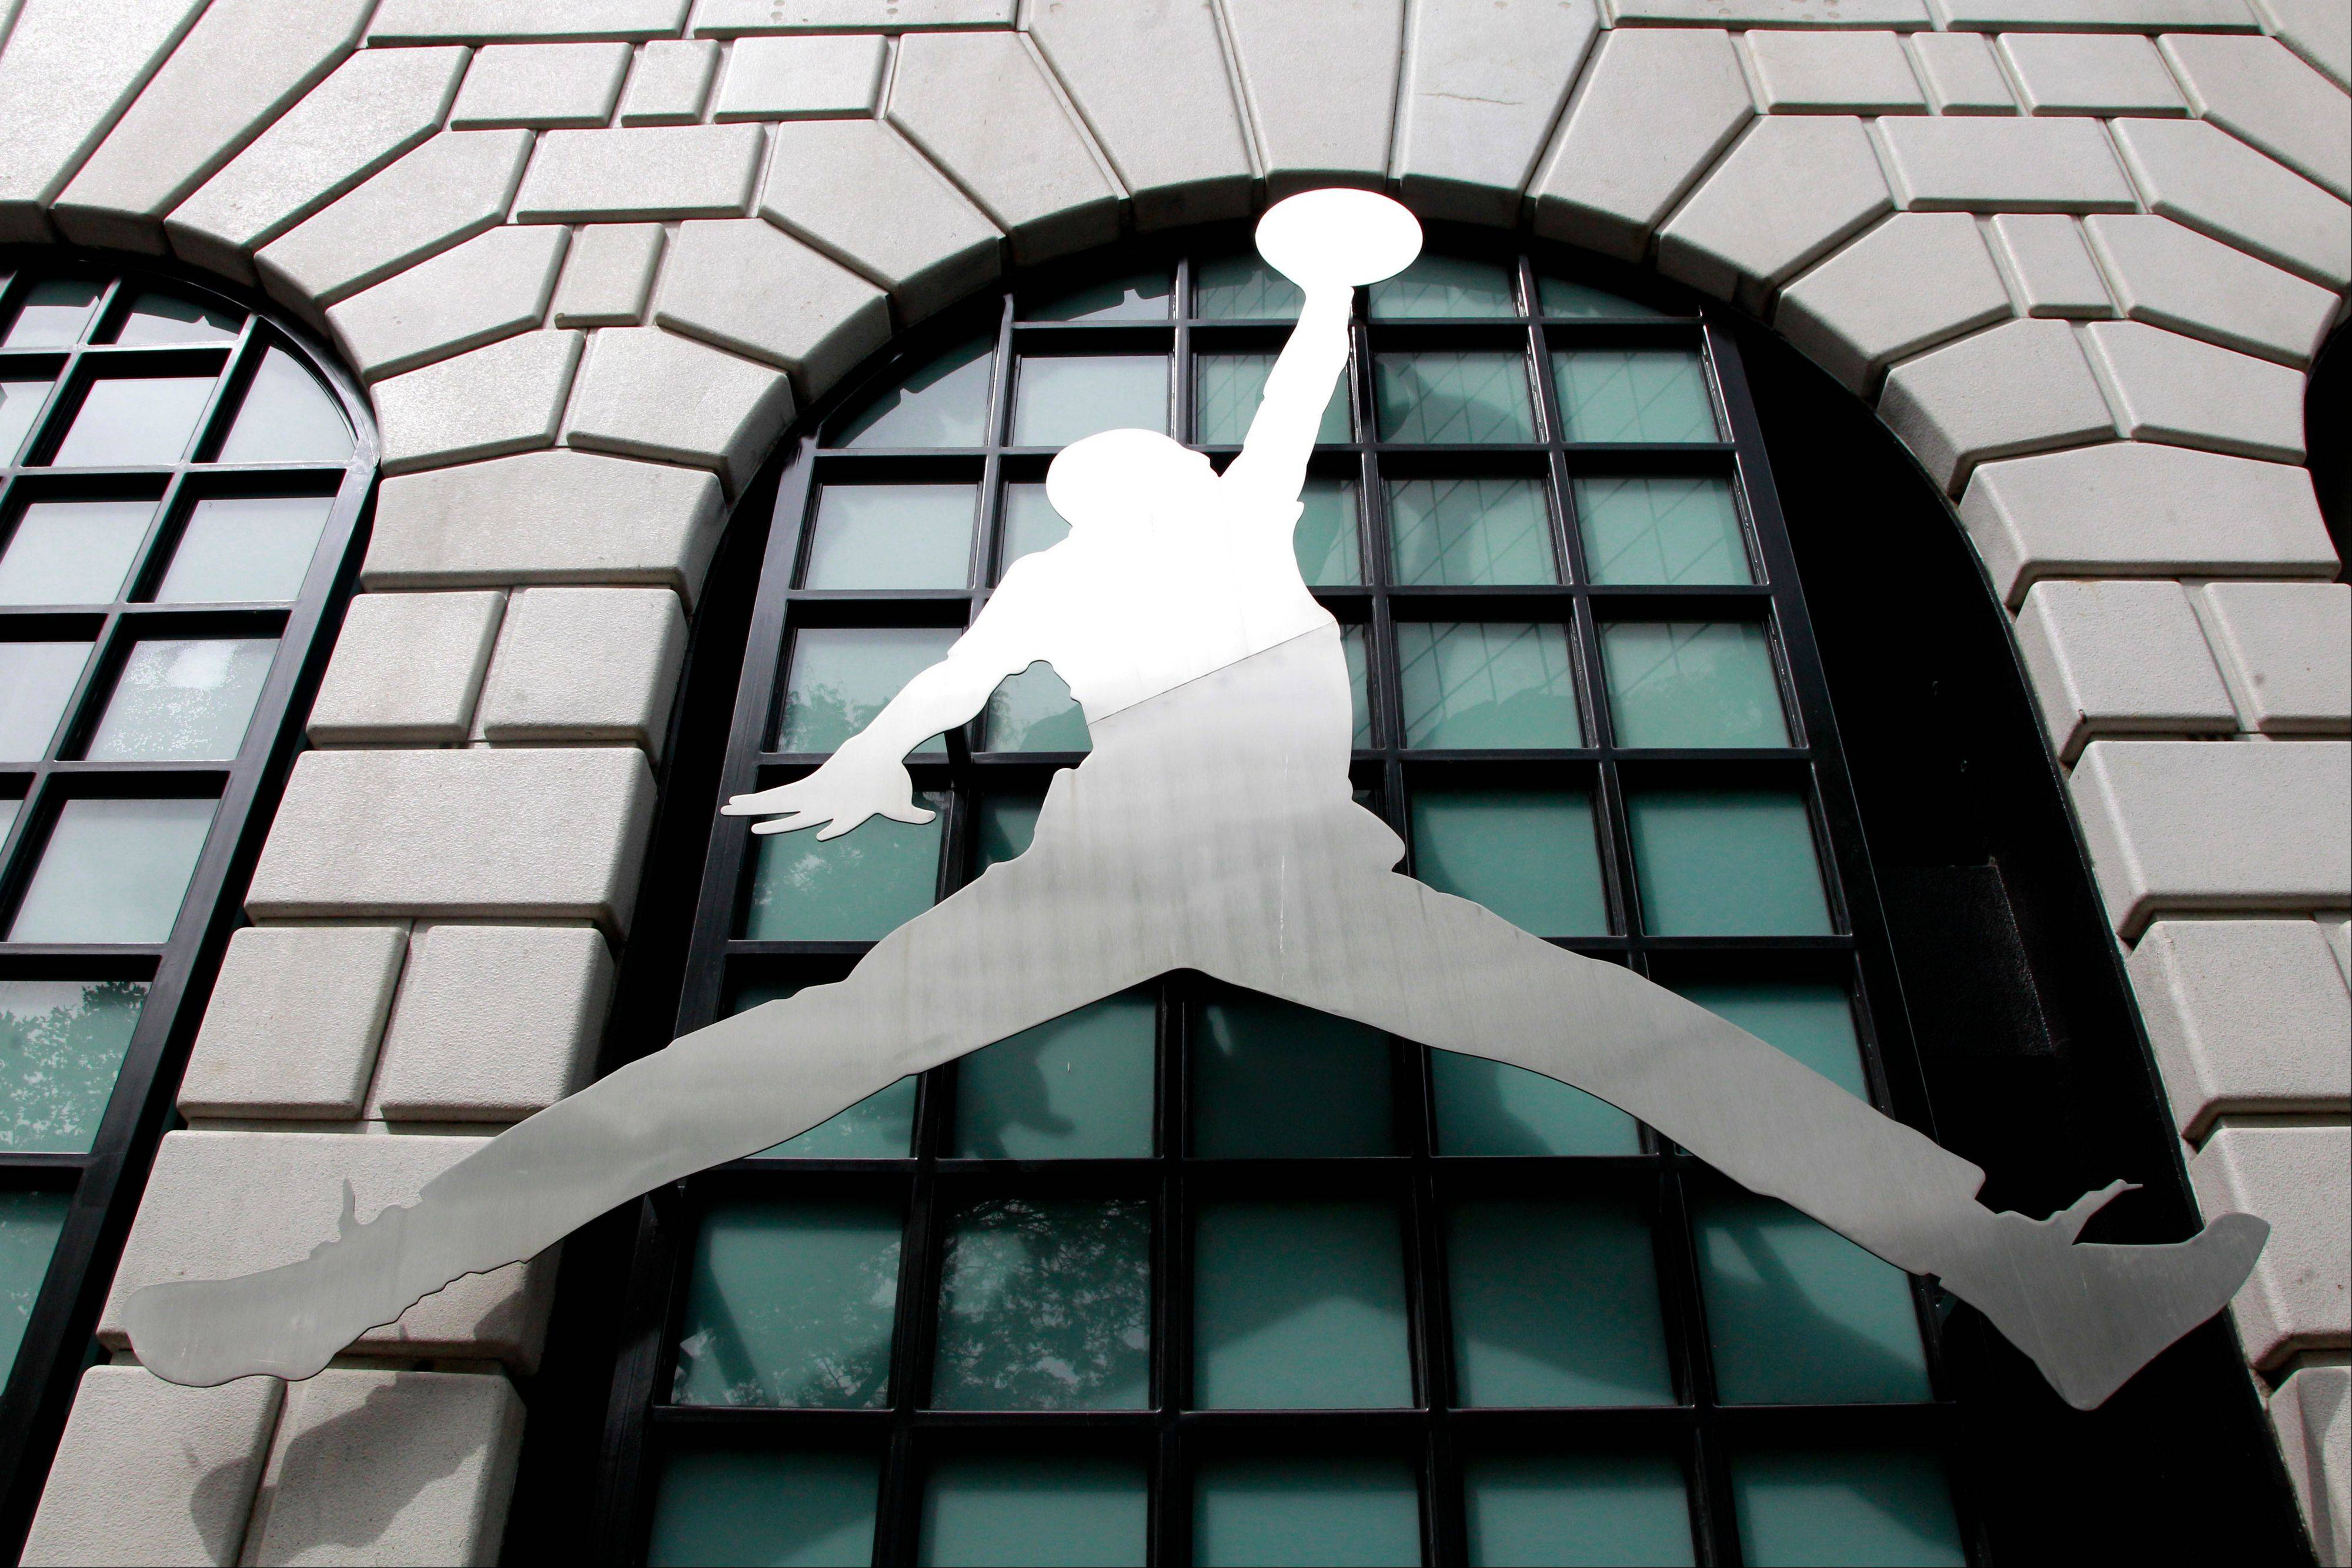 The Nike Air Jordan logo is shown in front of the Niketown store in Portland, Ore., Monday. Nike Inc.'s fourth-quarter net profit rose 14 percent to beat expectations as the company's sales improved around the globe.